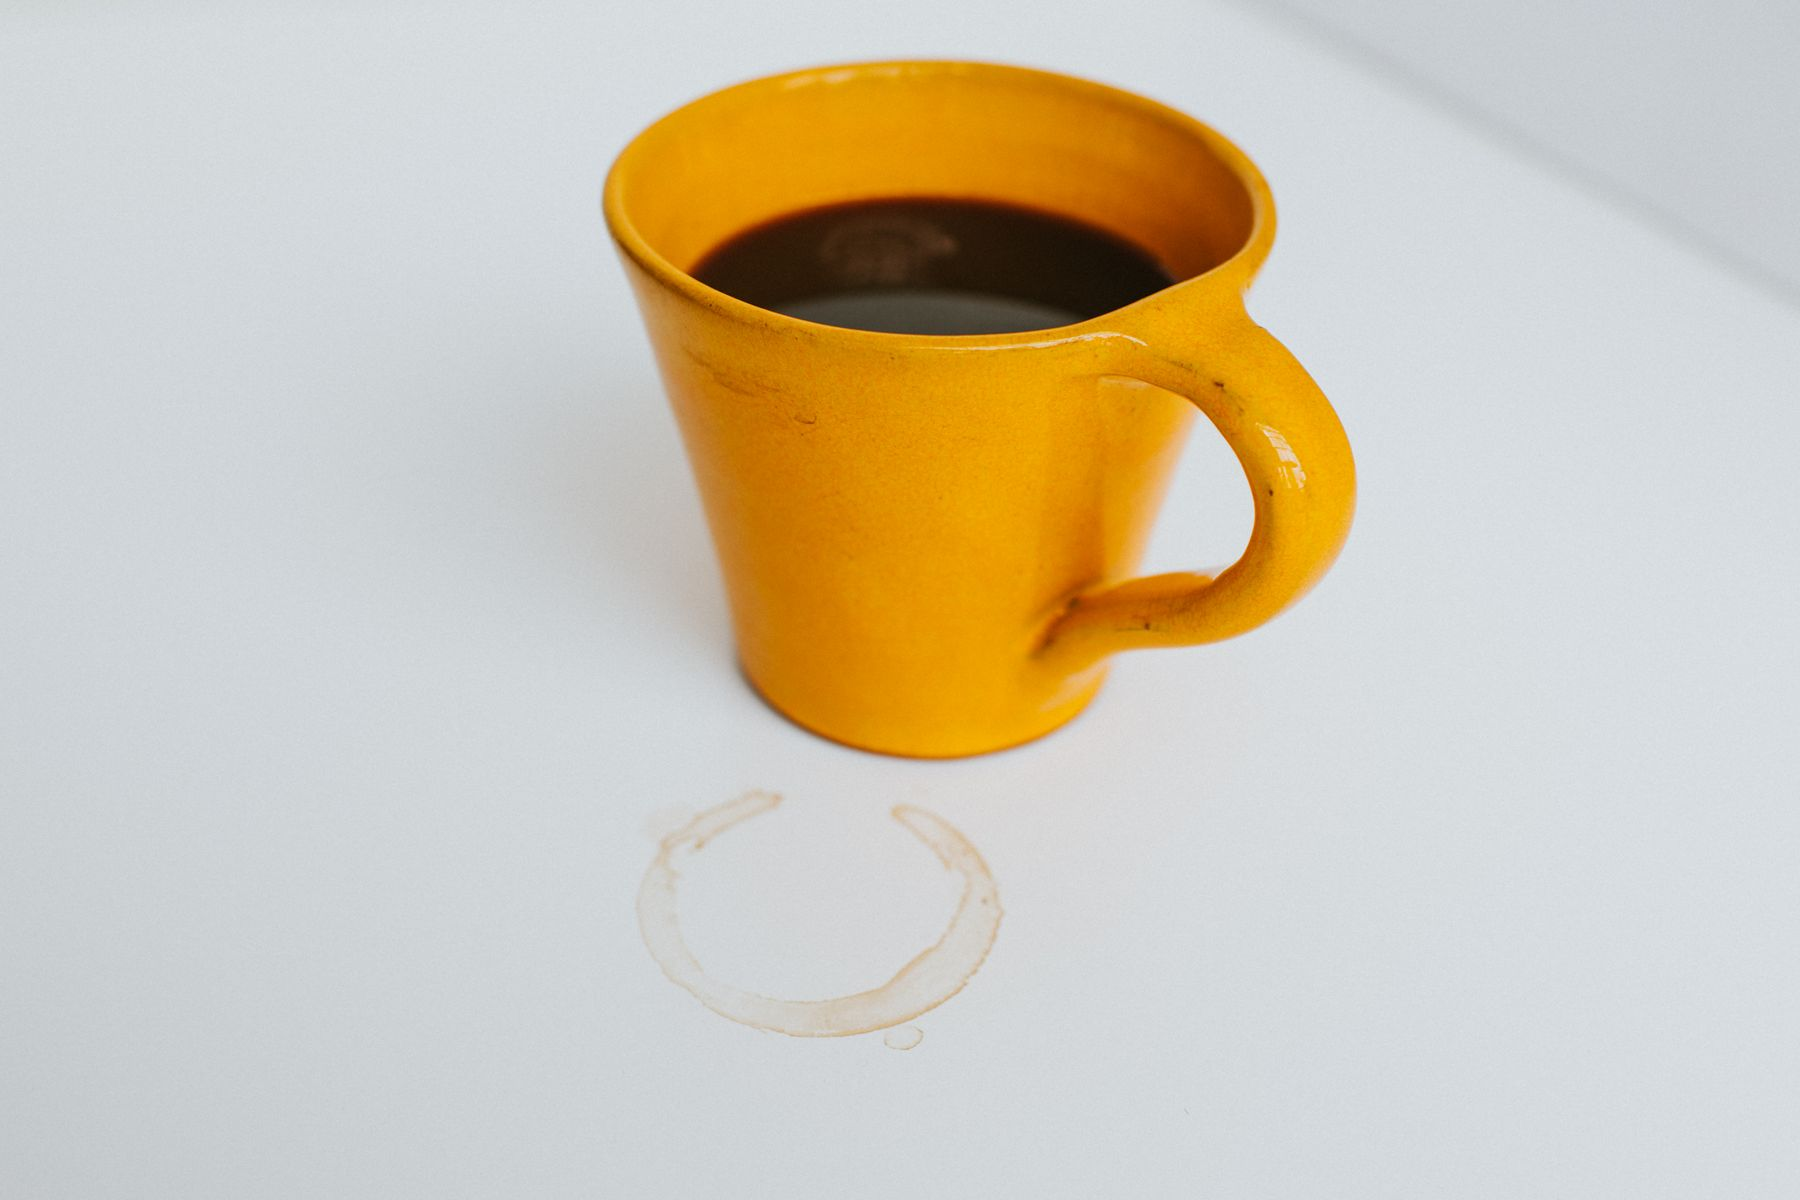 Yellow coffee cup with a stain